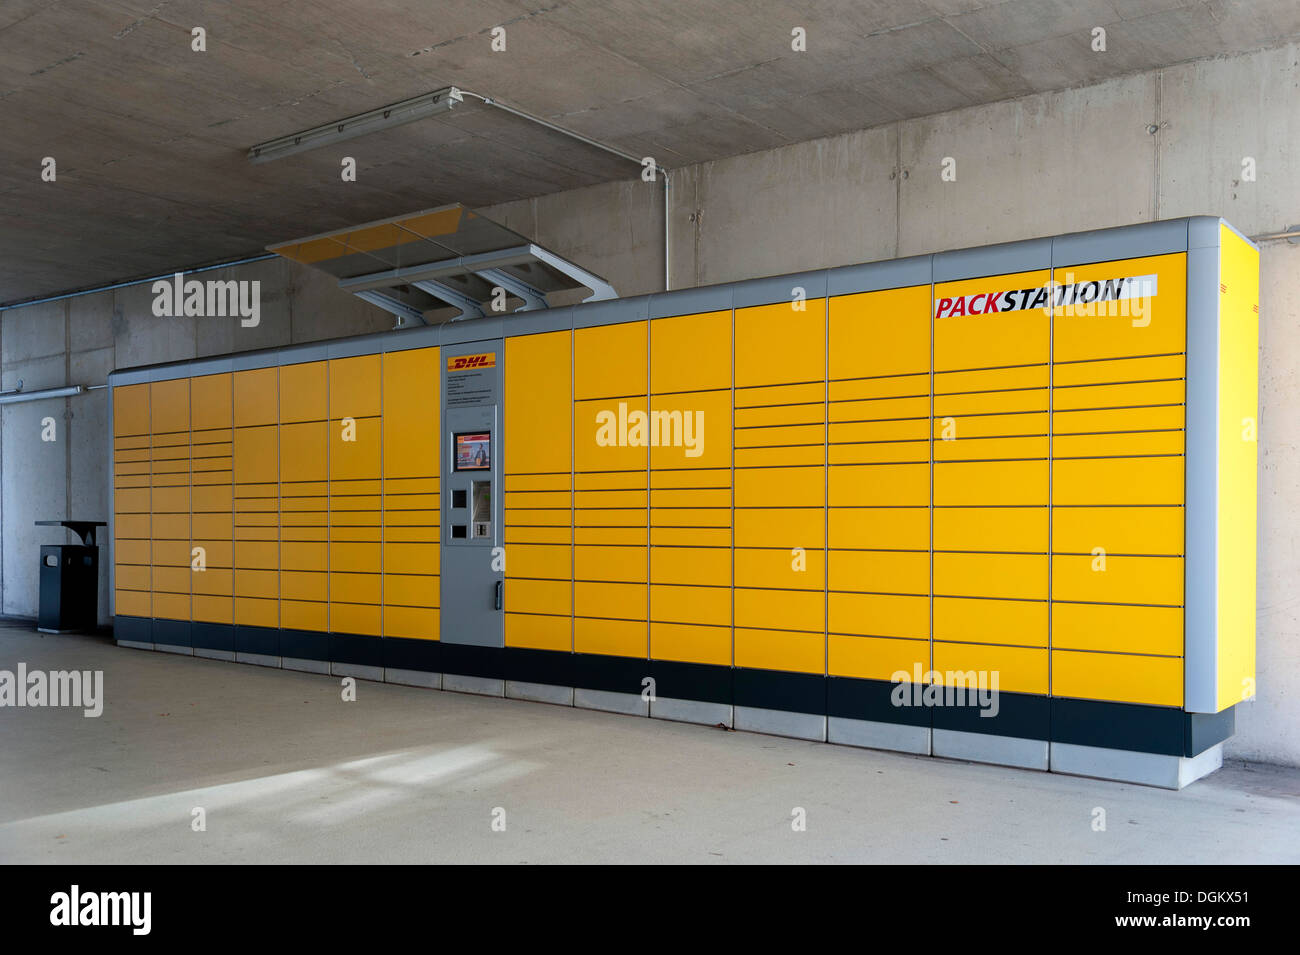 dhl packstation automated booths for self service for collection and stock photo 61903213 alamy. Black Bedroom Furniture Sets. Home Design Ideas